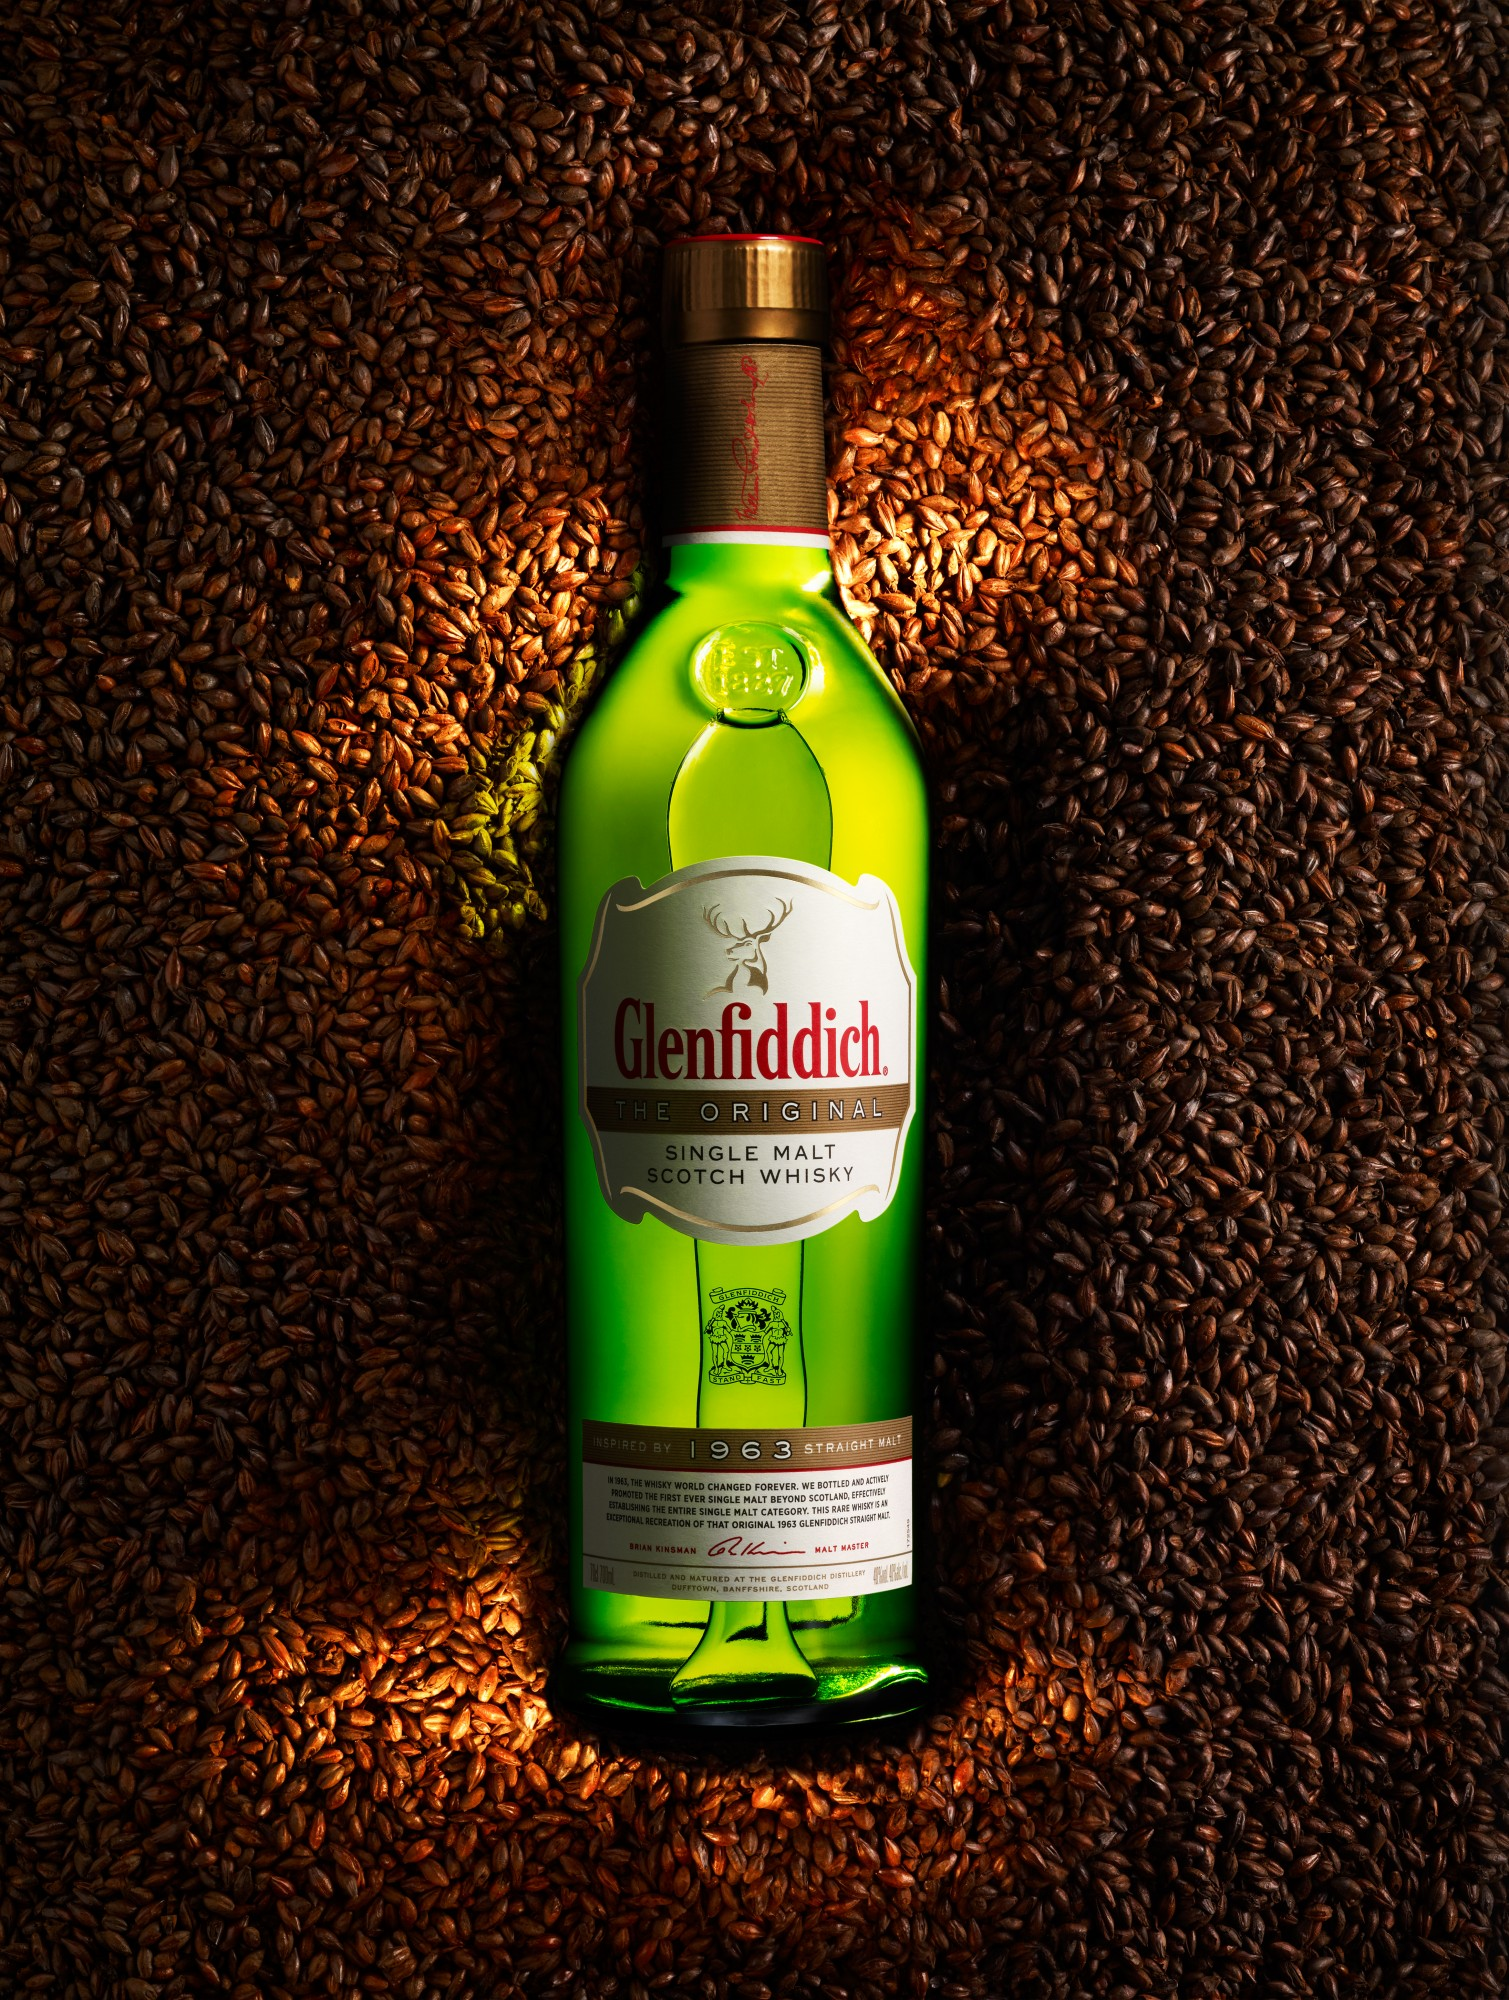 Glenfiddich The Original-Whisky Magazine